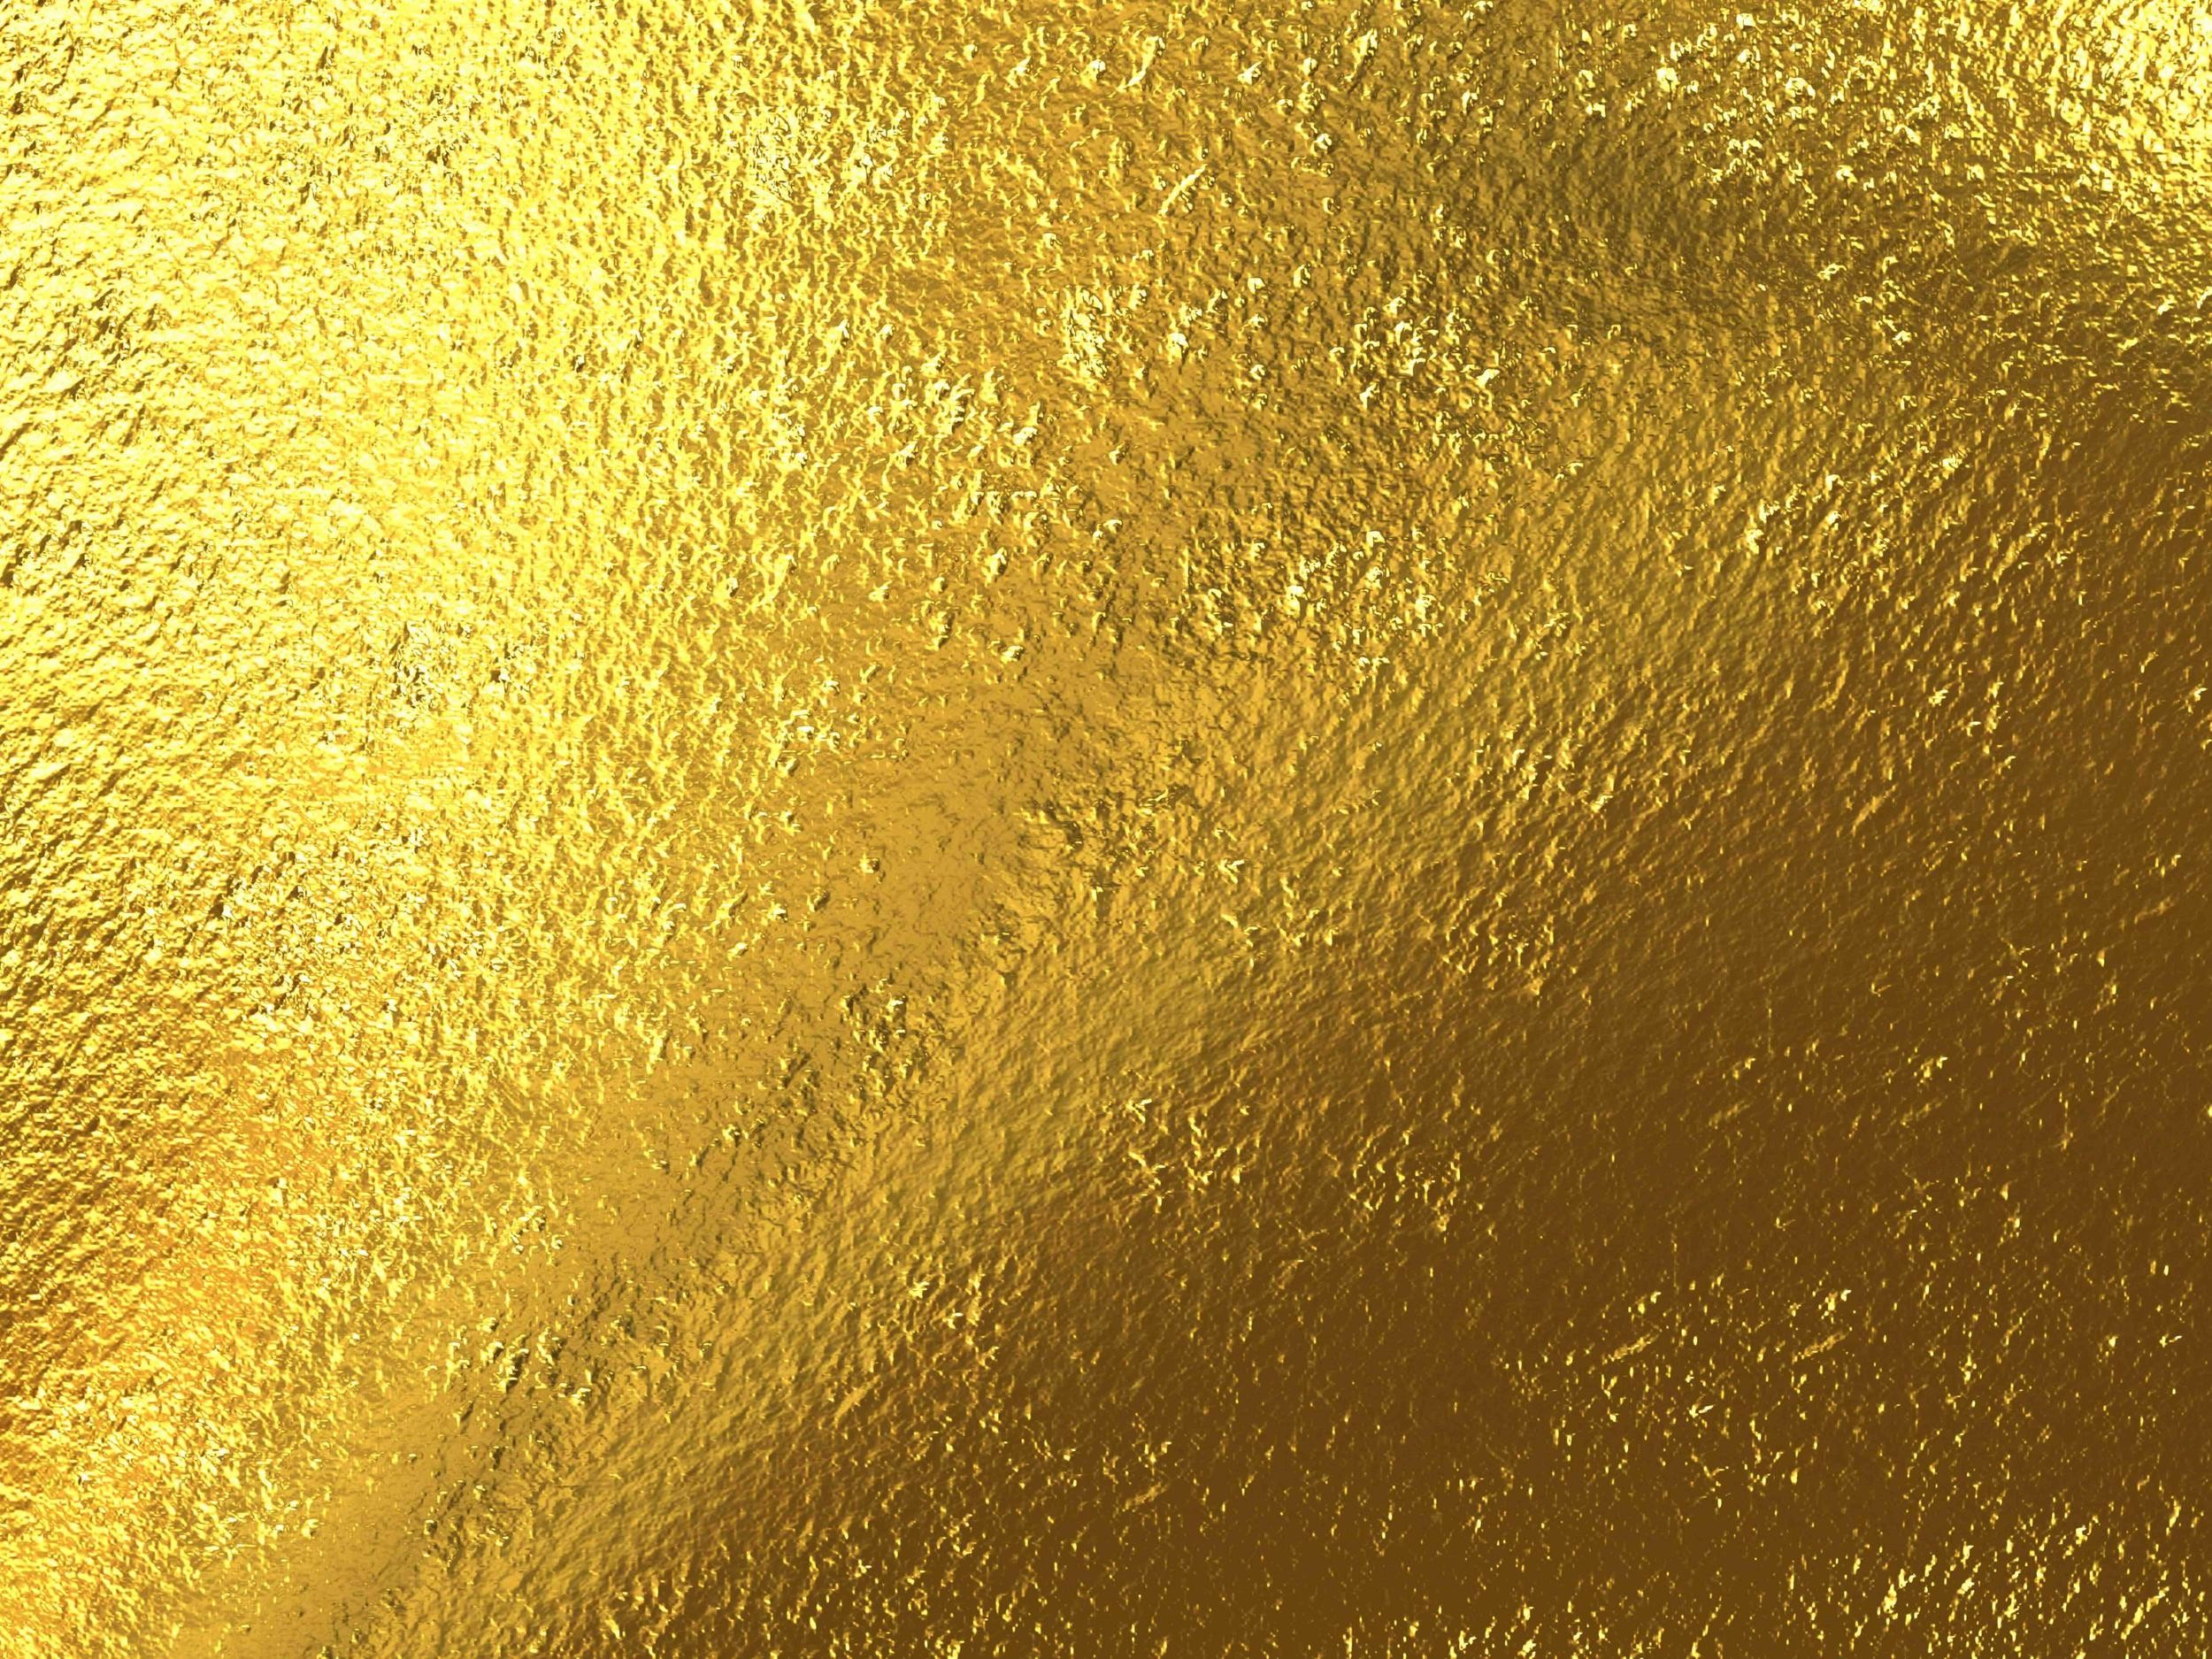 Gold Background Images (25+ Images